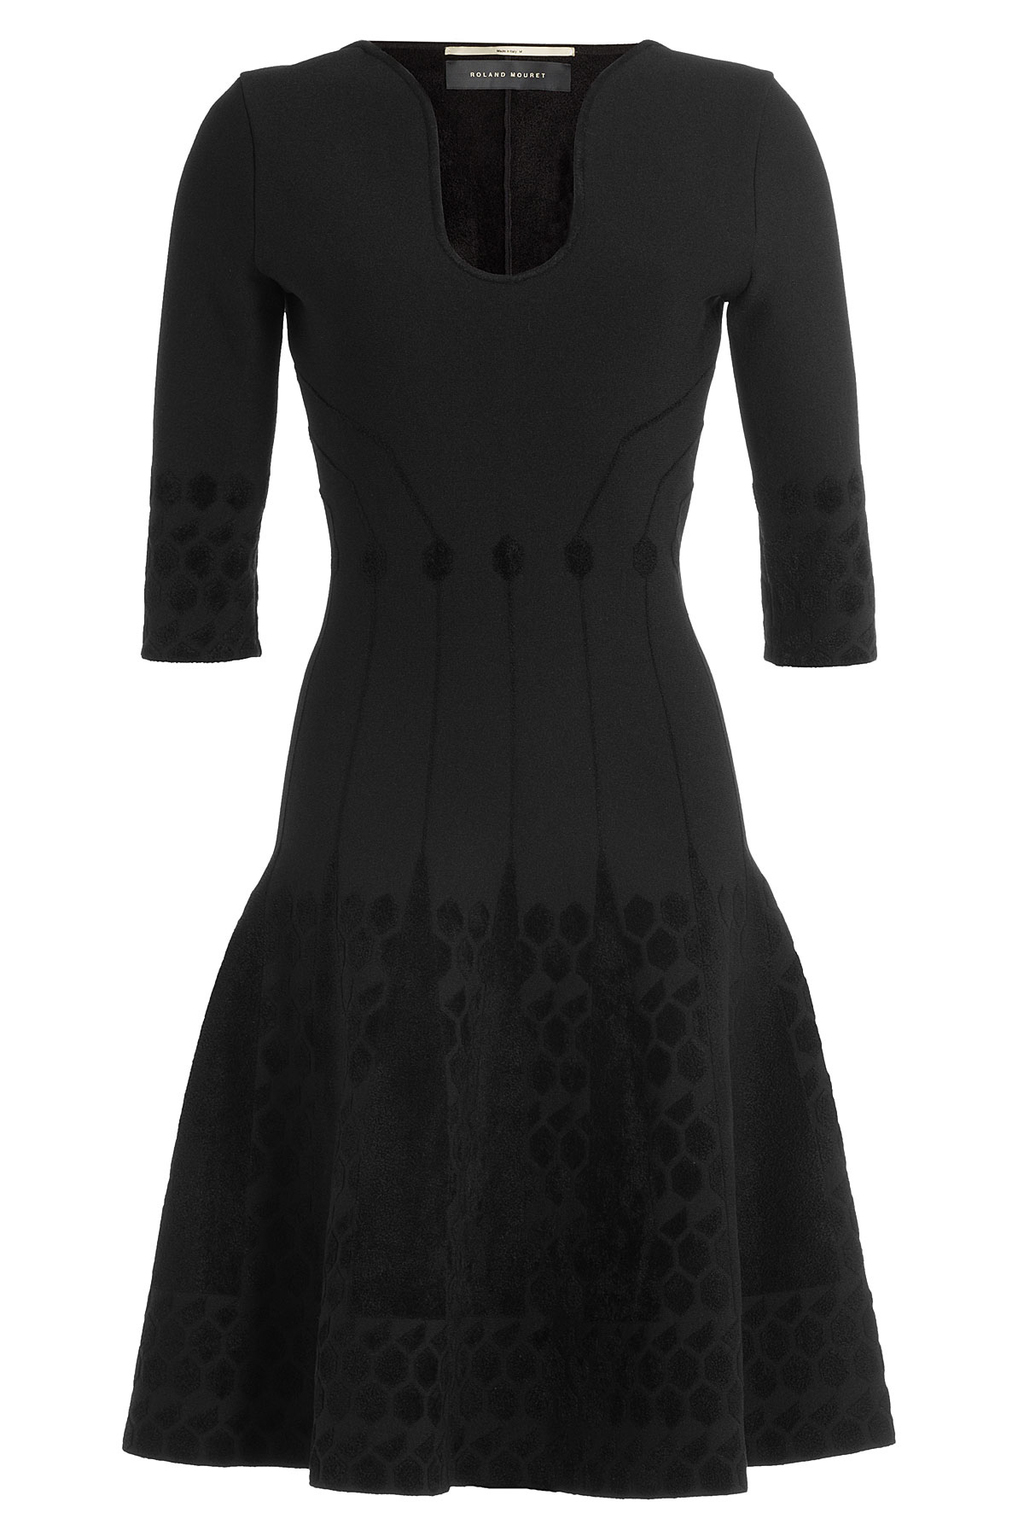 Dress With Flared Hem - neckline: v-neck; pattern: plain; predominant colour: black; occasions: evening; length: on the knee; fit: fitted at waist & bust; style: fit & flare; fibres: viscose/rayon - stretch; sleeve length: half sleeve; sleeve style: standard; pattern type: fabric; texture group: jersey - stretchy/drapey; season: a/w 2016; wardrobe: event